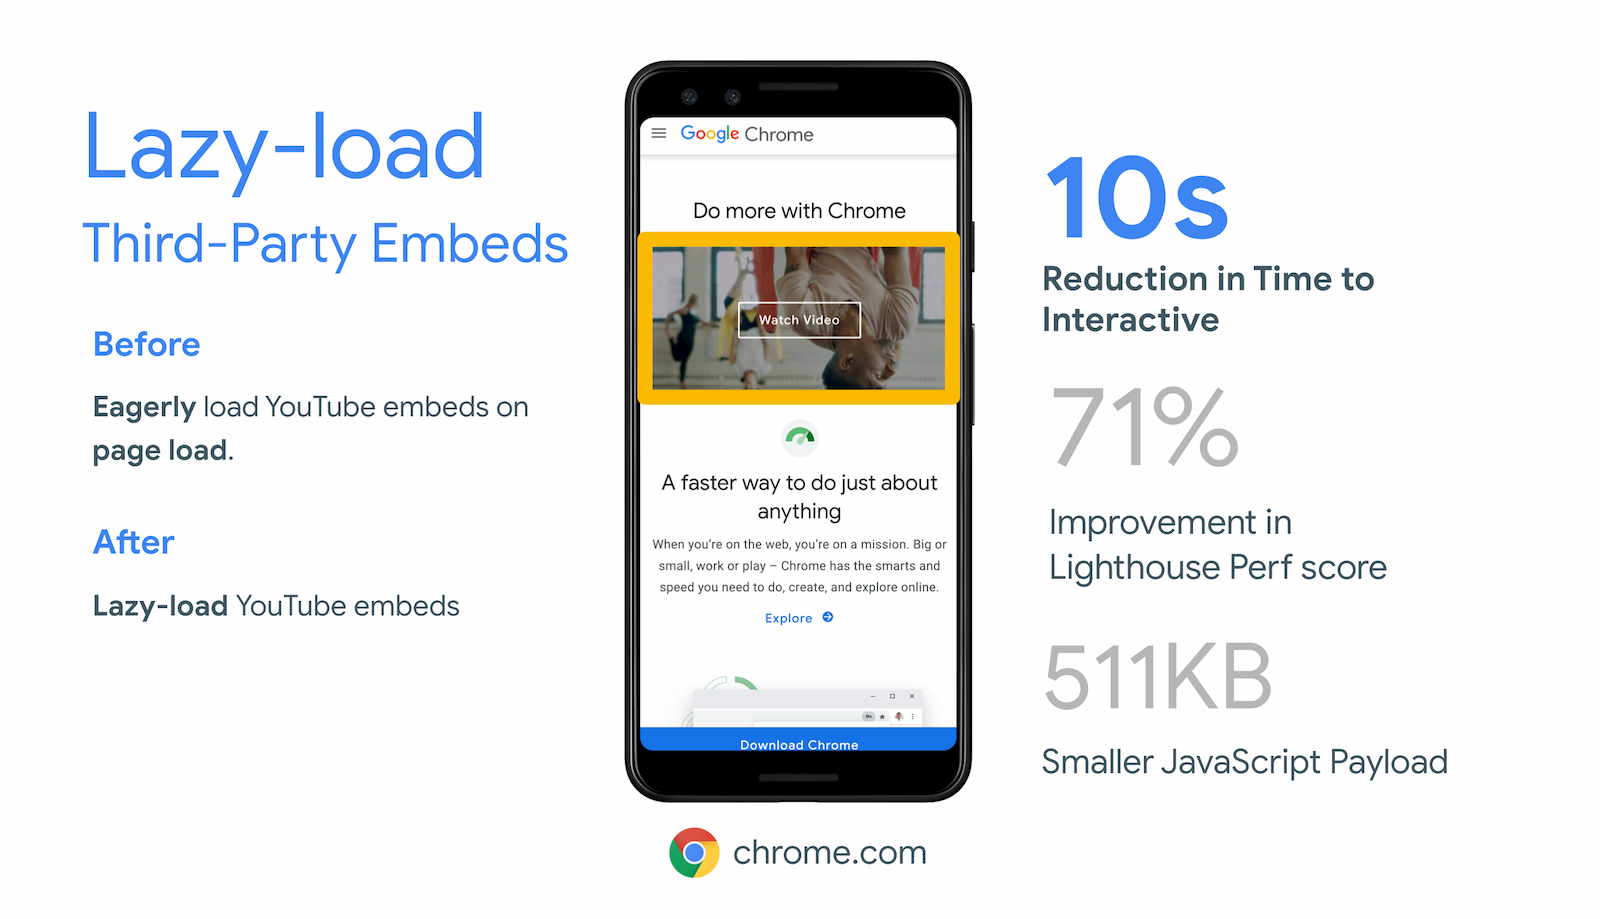 Chrome.com achieved a 10 second reduction in Time To Interactive by lazy-loading offscreen iframes for their YouTube video embed